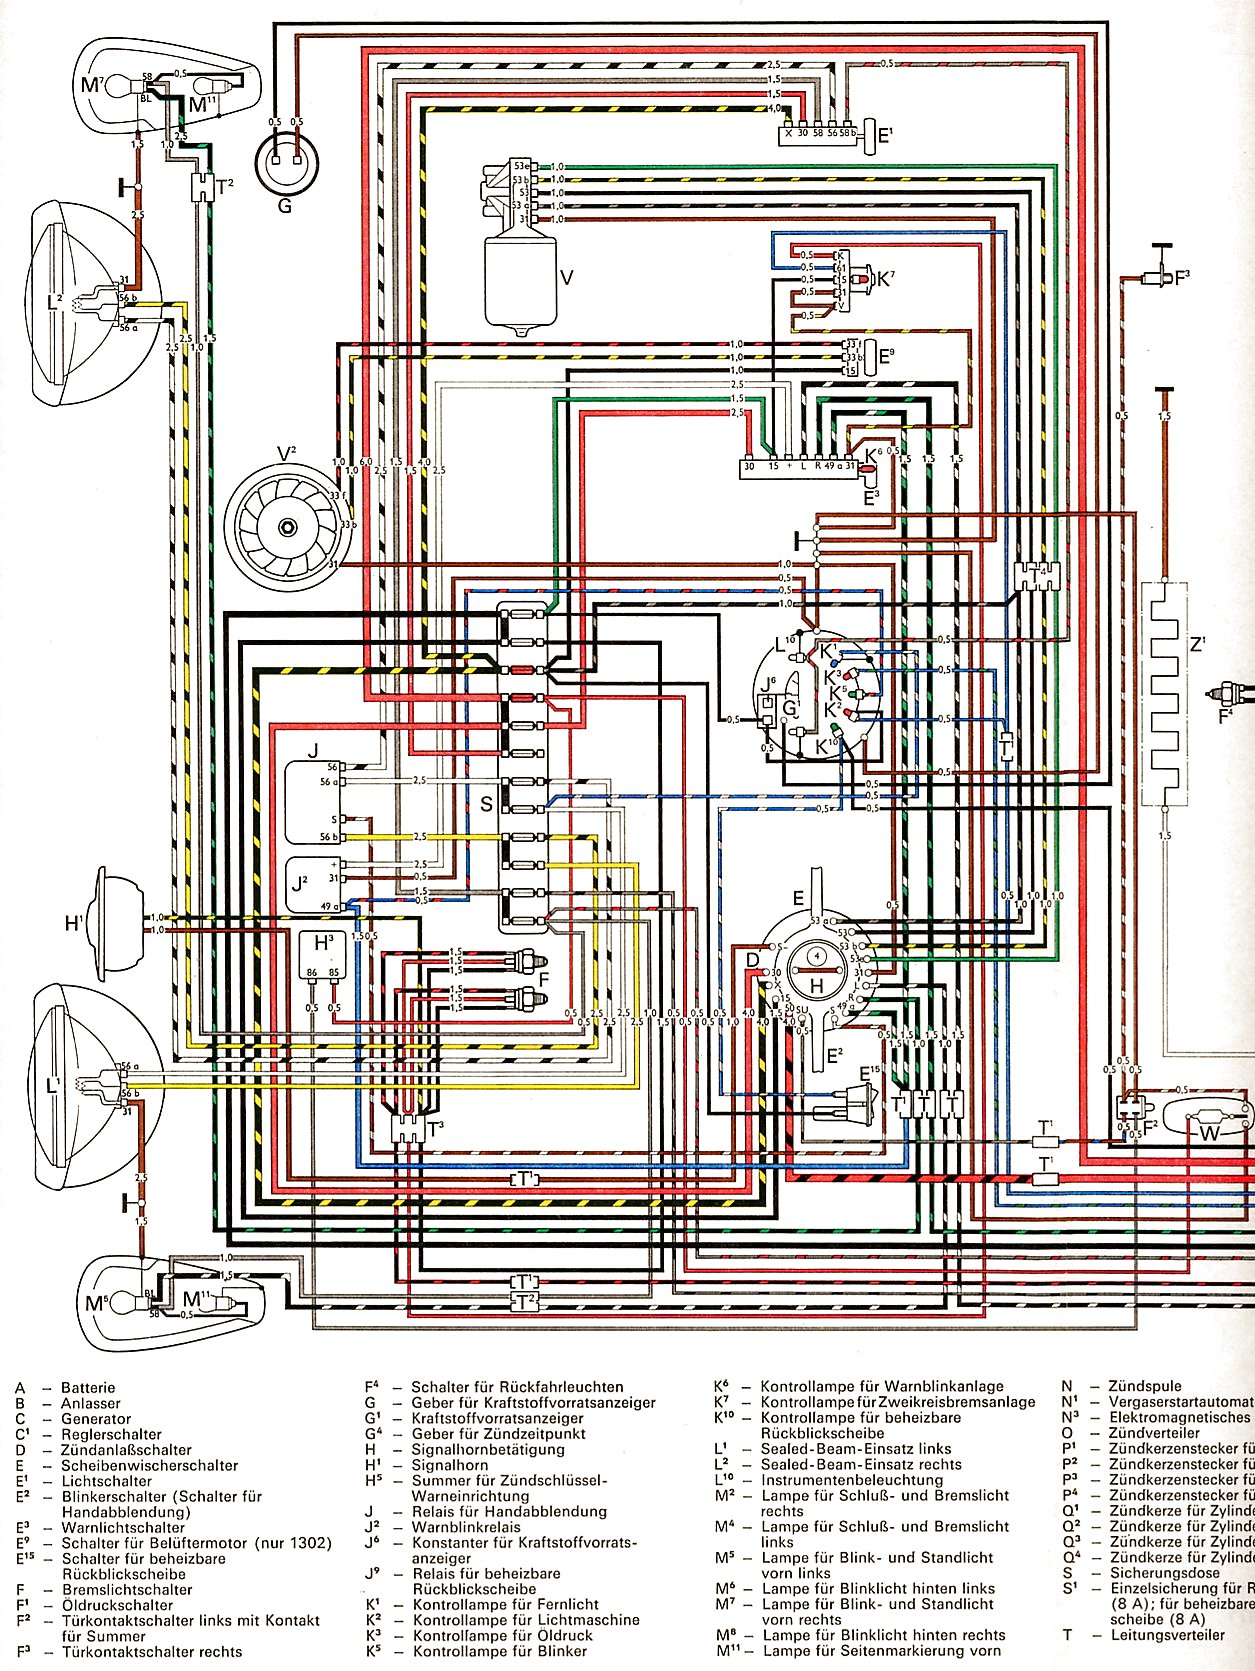 1300_and_1302_USA_from_August_1971 1 wiring diagram shoptalkforums com 1971 volkswagen super beetle wiring diagram at panicattacktreatment.co